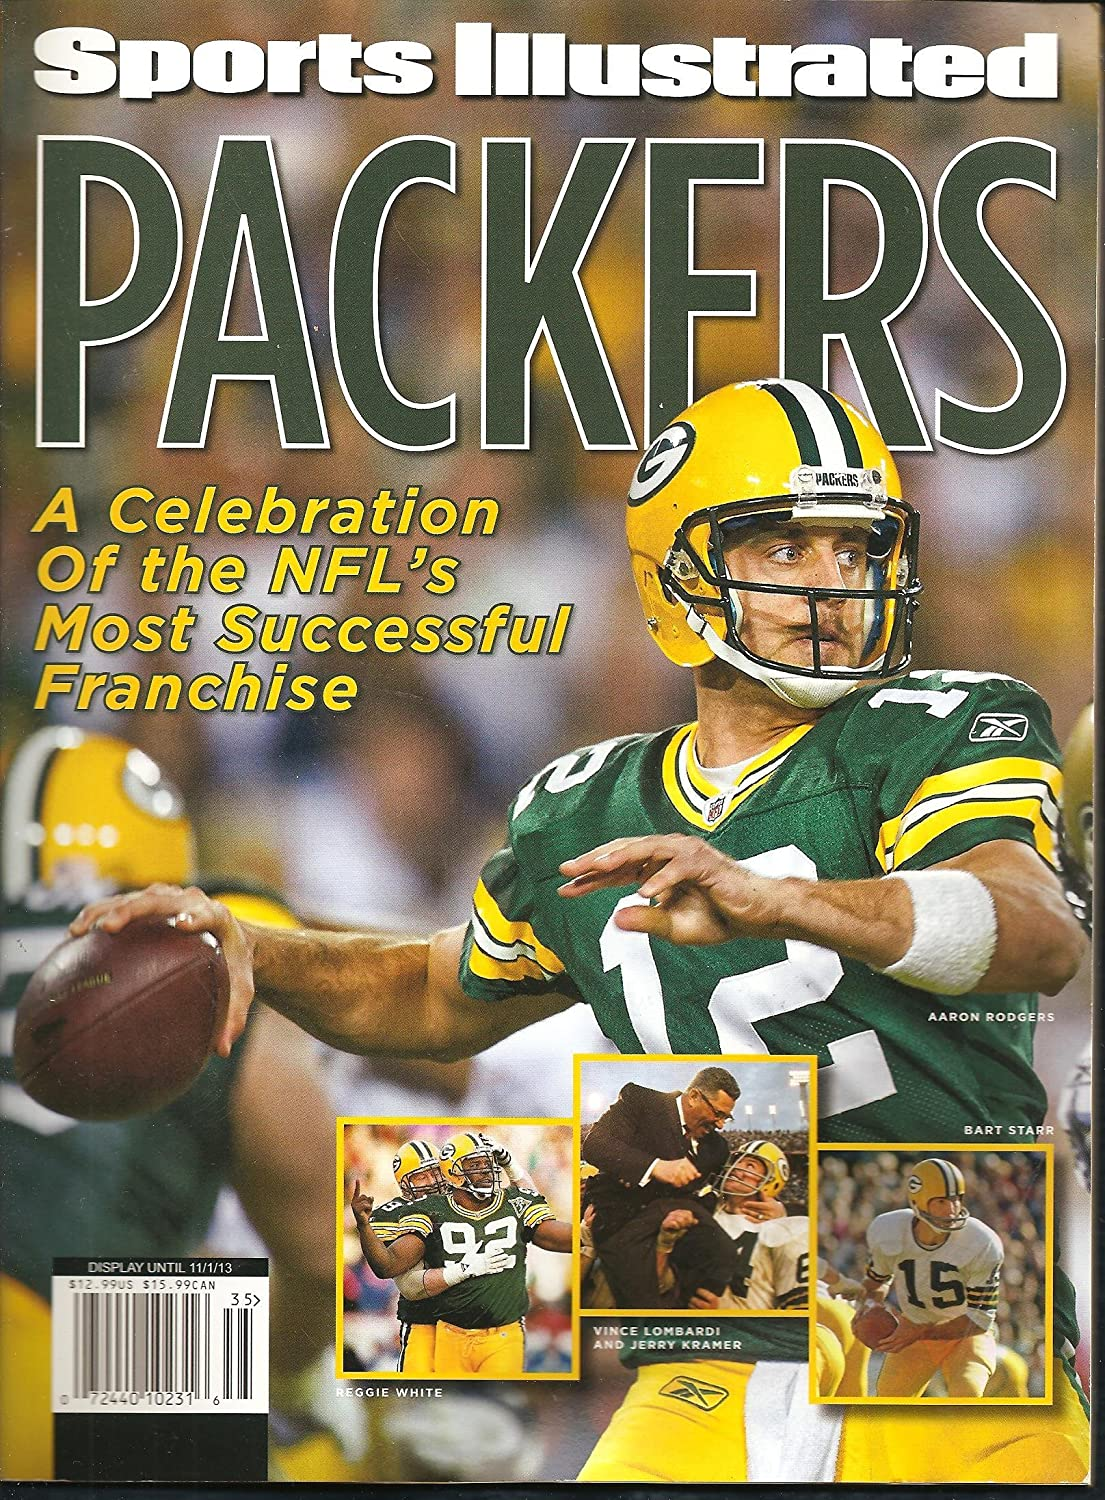 Packers a Celebration of the Nfl's Most Successful Franchise Commemorative Issue Rodgers Starr Favre Kramer Lombardi on Cover SPORTS ILLUSTRATED New, Mint! 2013